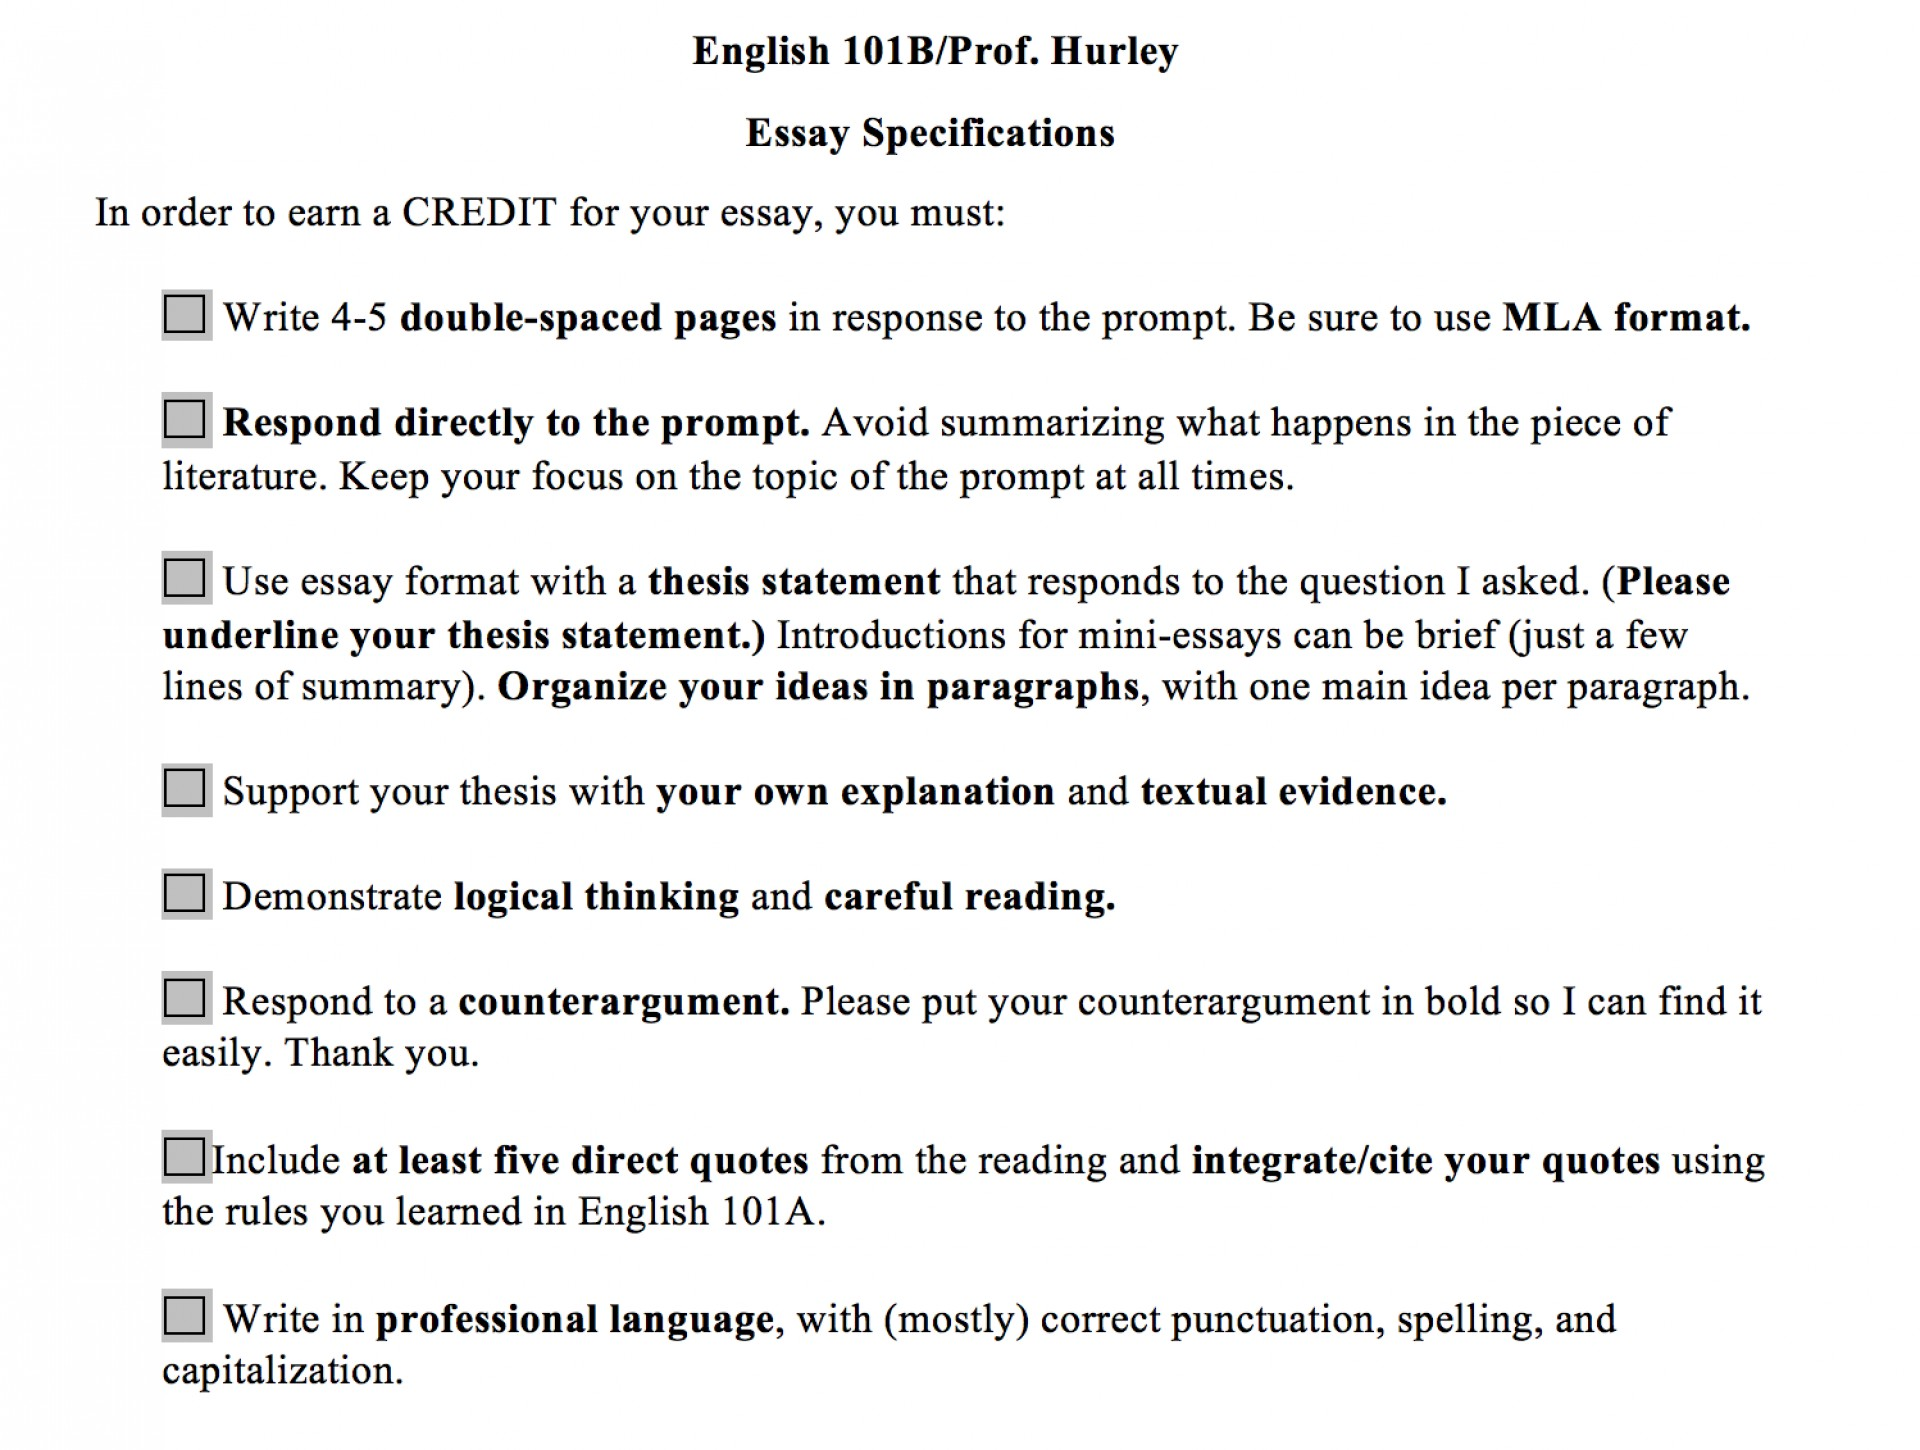 012 1bsged7ard3msw0obrhnp0a Essay Example How To Cite Evidence In Magnificent An Website Textual 1920